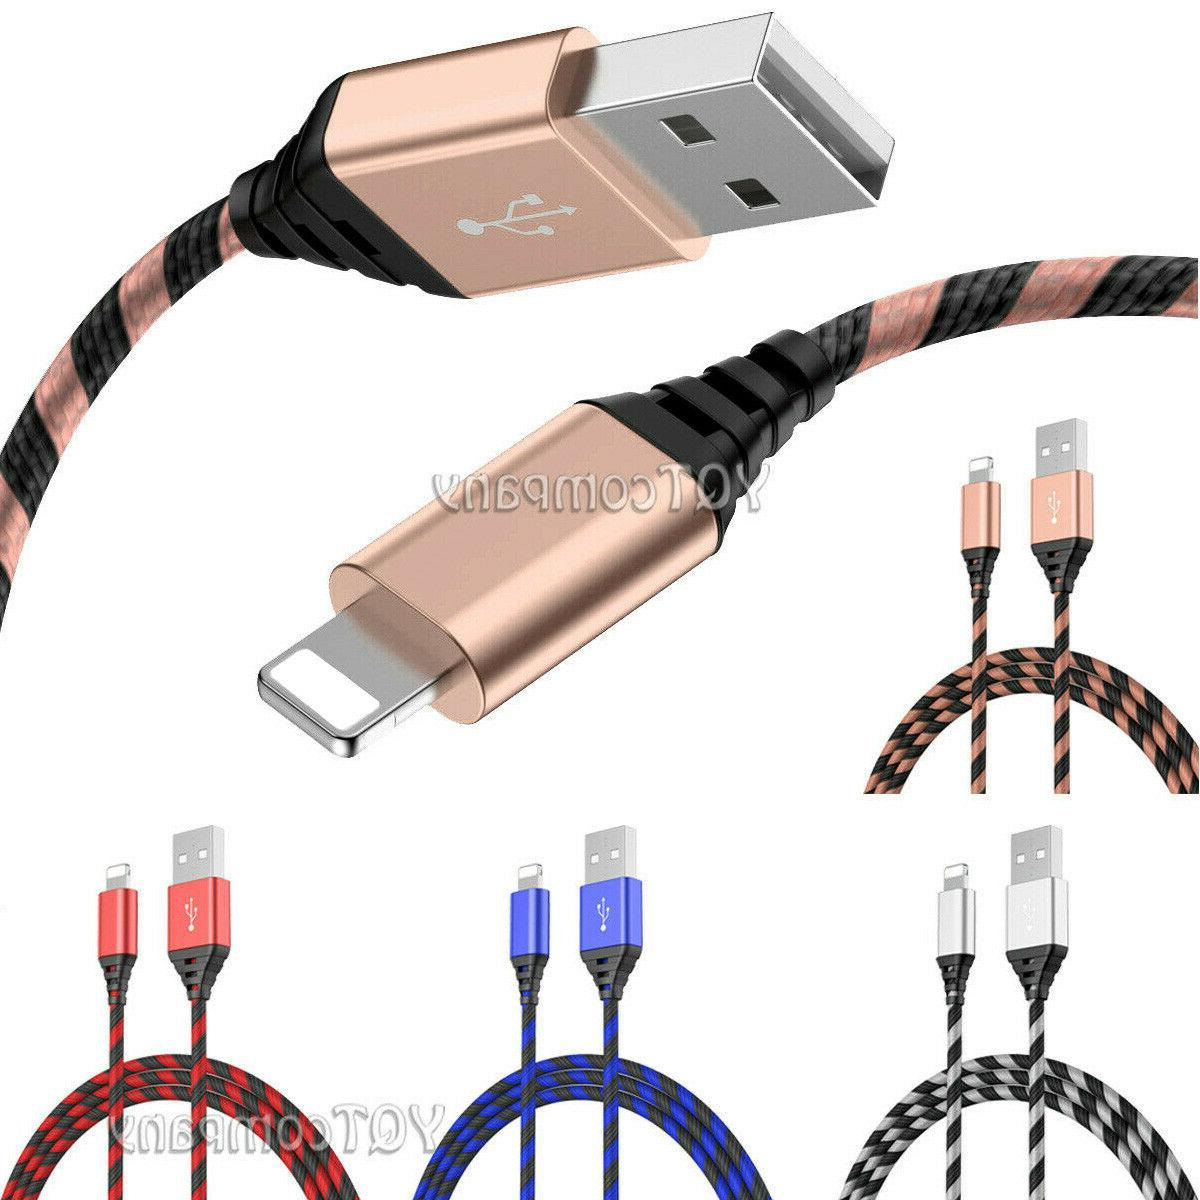 2 Pack Long Cable Charger Charging for iPhone 8 7 6S Plus 11